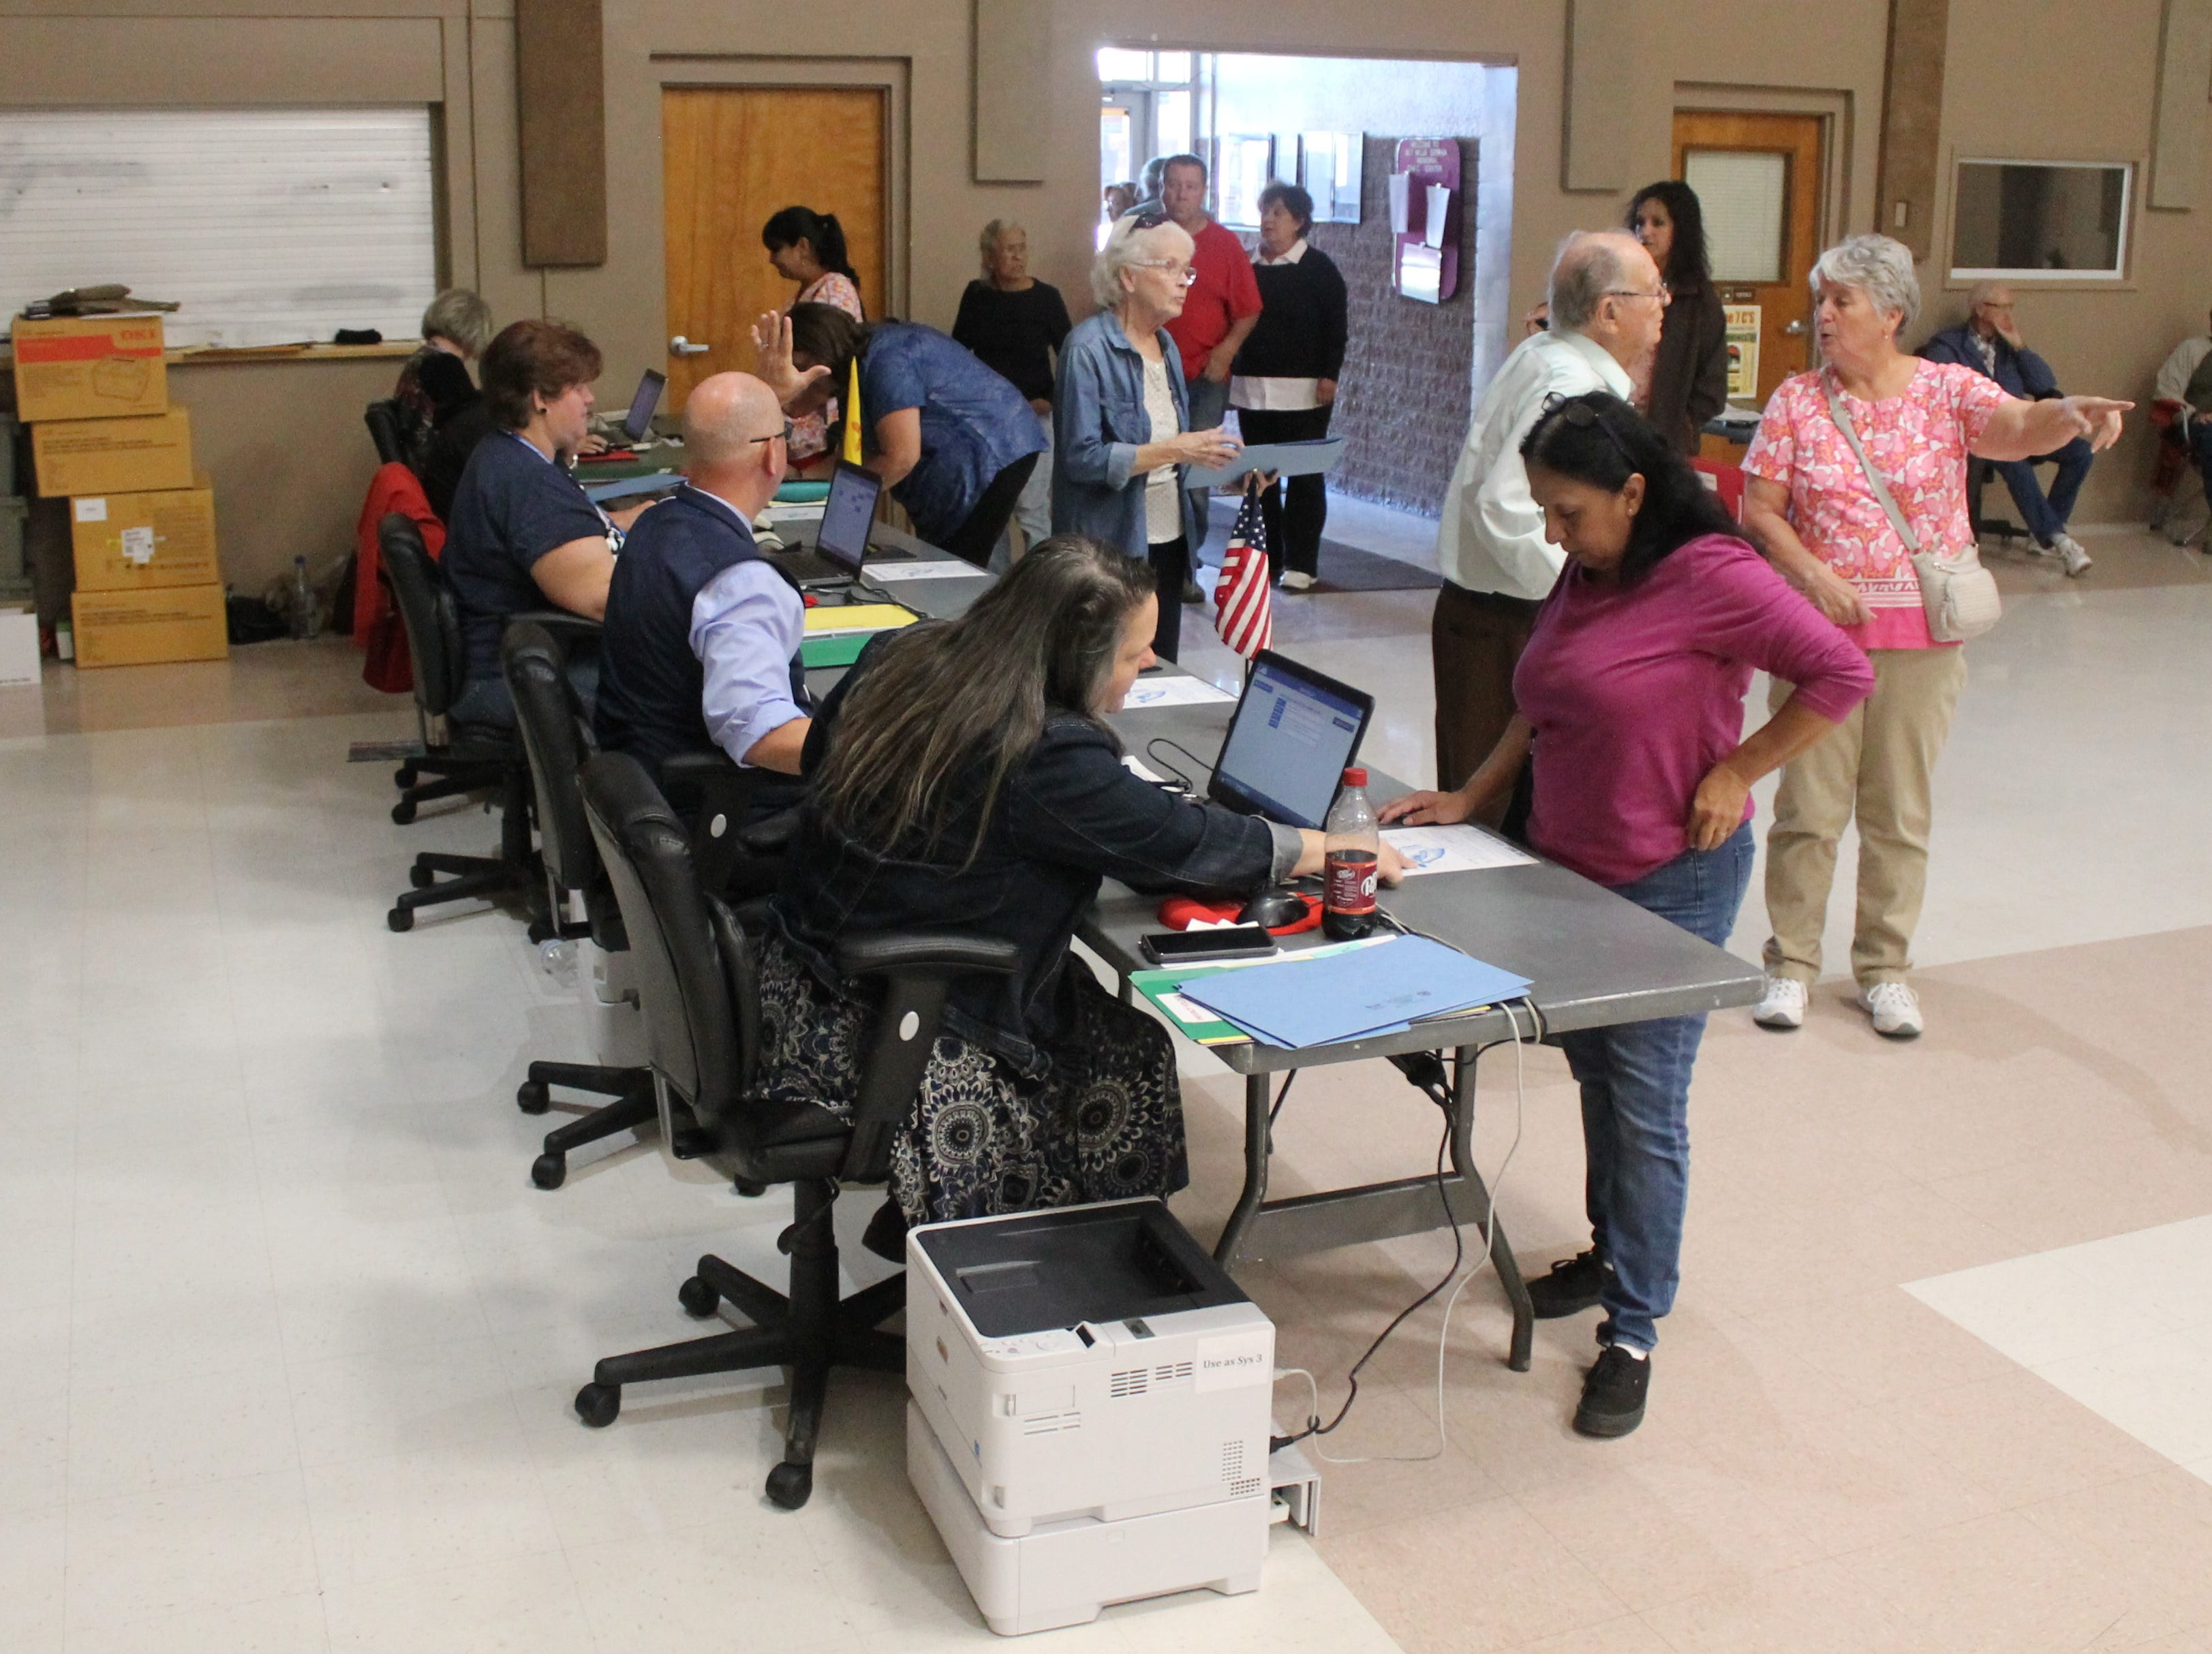 Around a third of Otero County's registered voters - roughly 10,000 residents - chose to vote early, Otero County Clerk Robyn Holmes said.